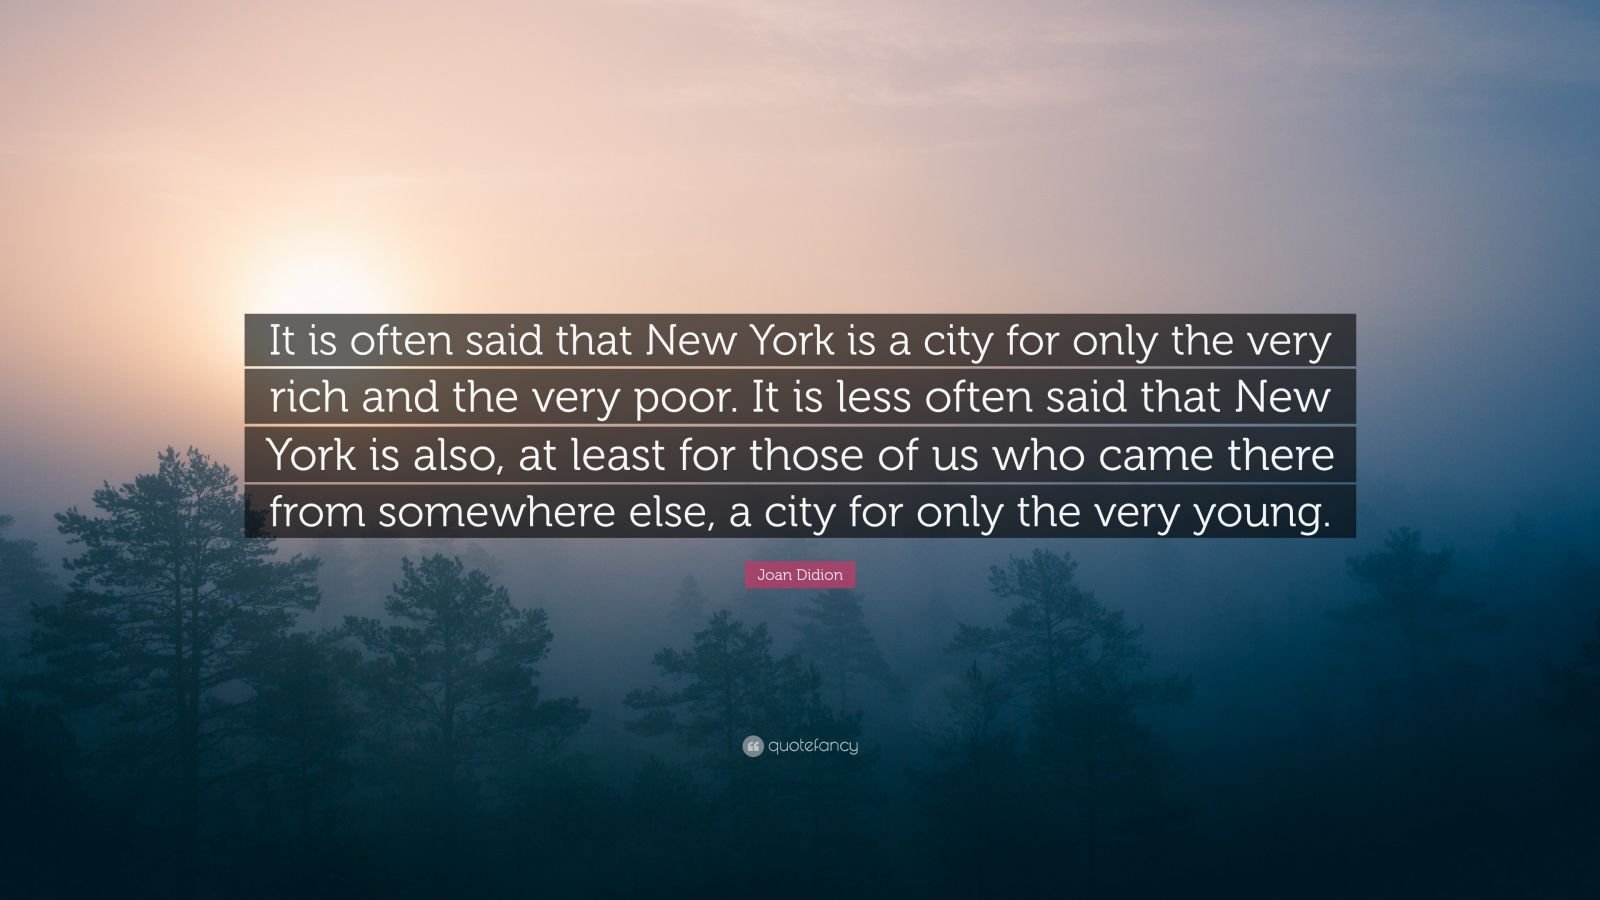 "Joan Didion Quote: ""It is often said that New York is a city for only the very rich and the very poor. It is less often said that New York is also, at least for those of us who came there from somewhere else, a city for only the very young."""